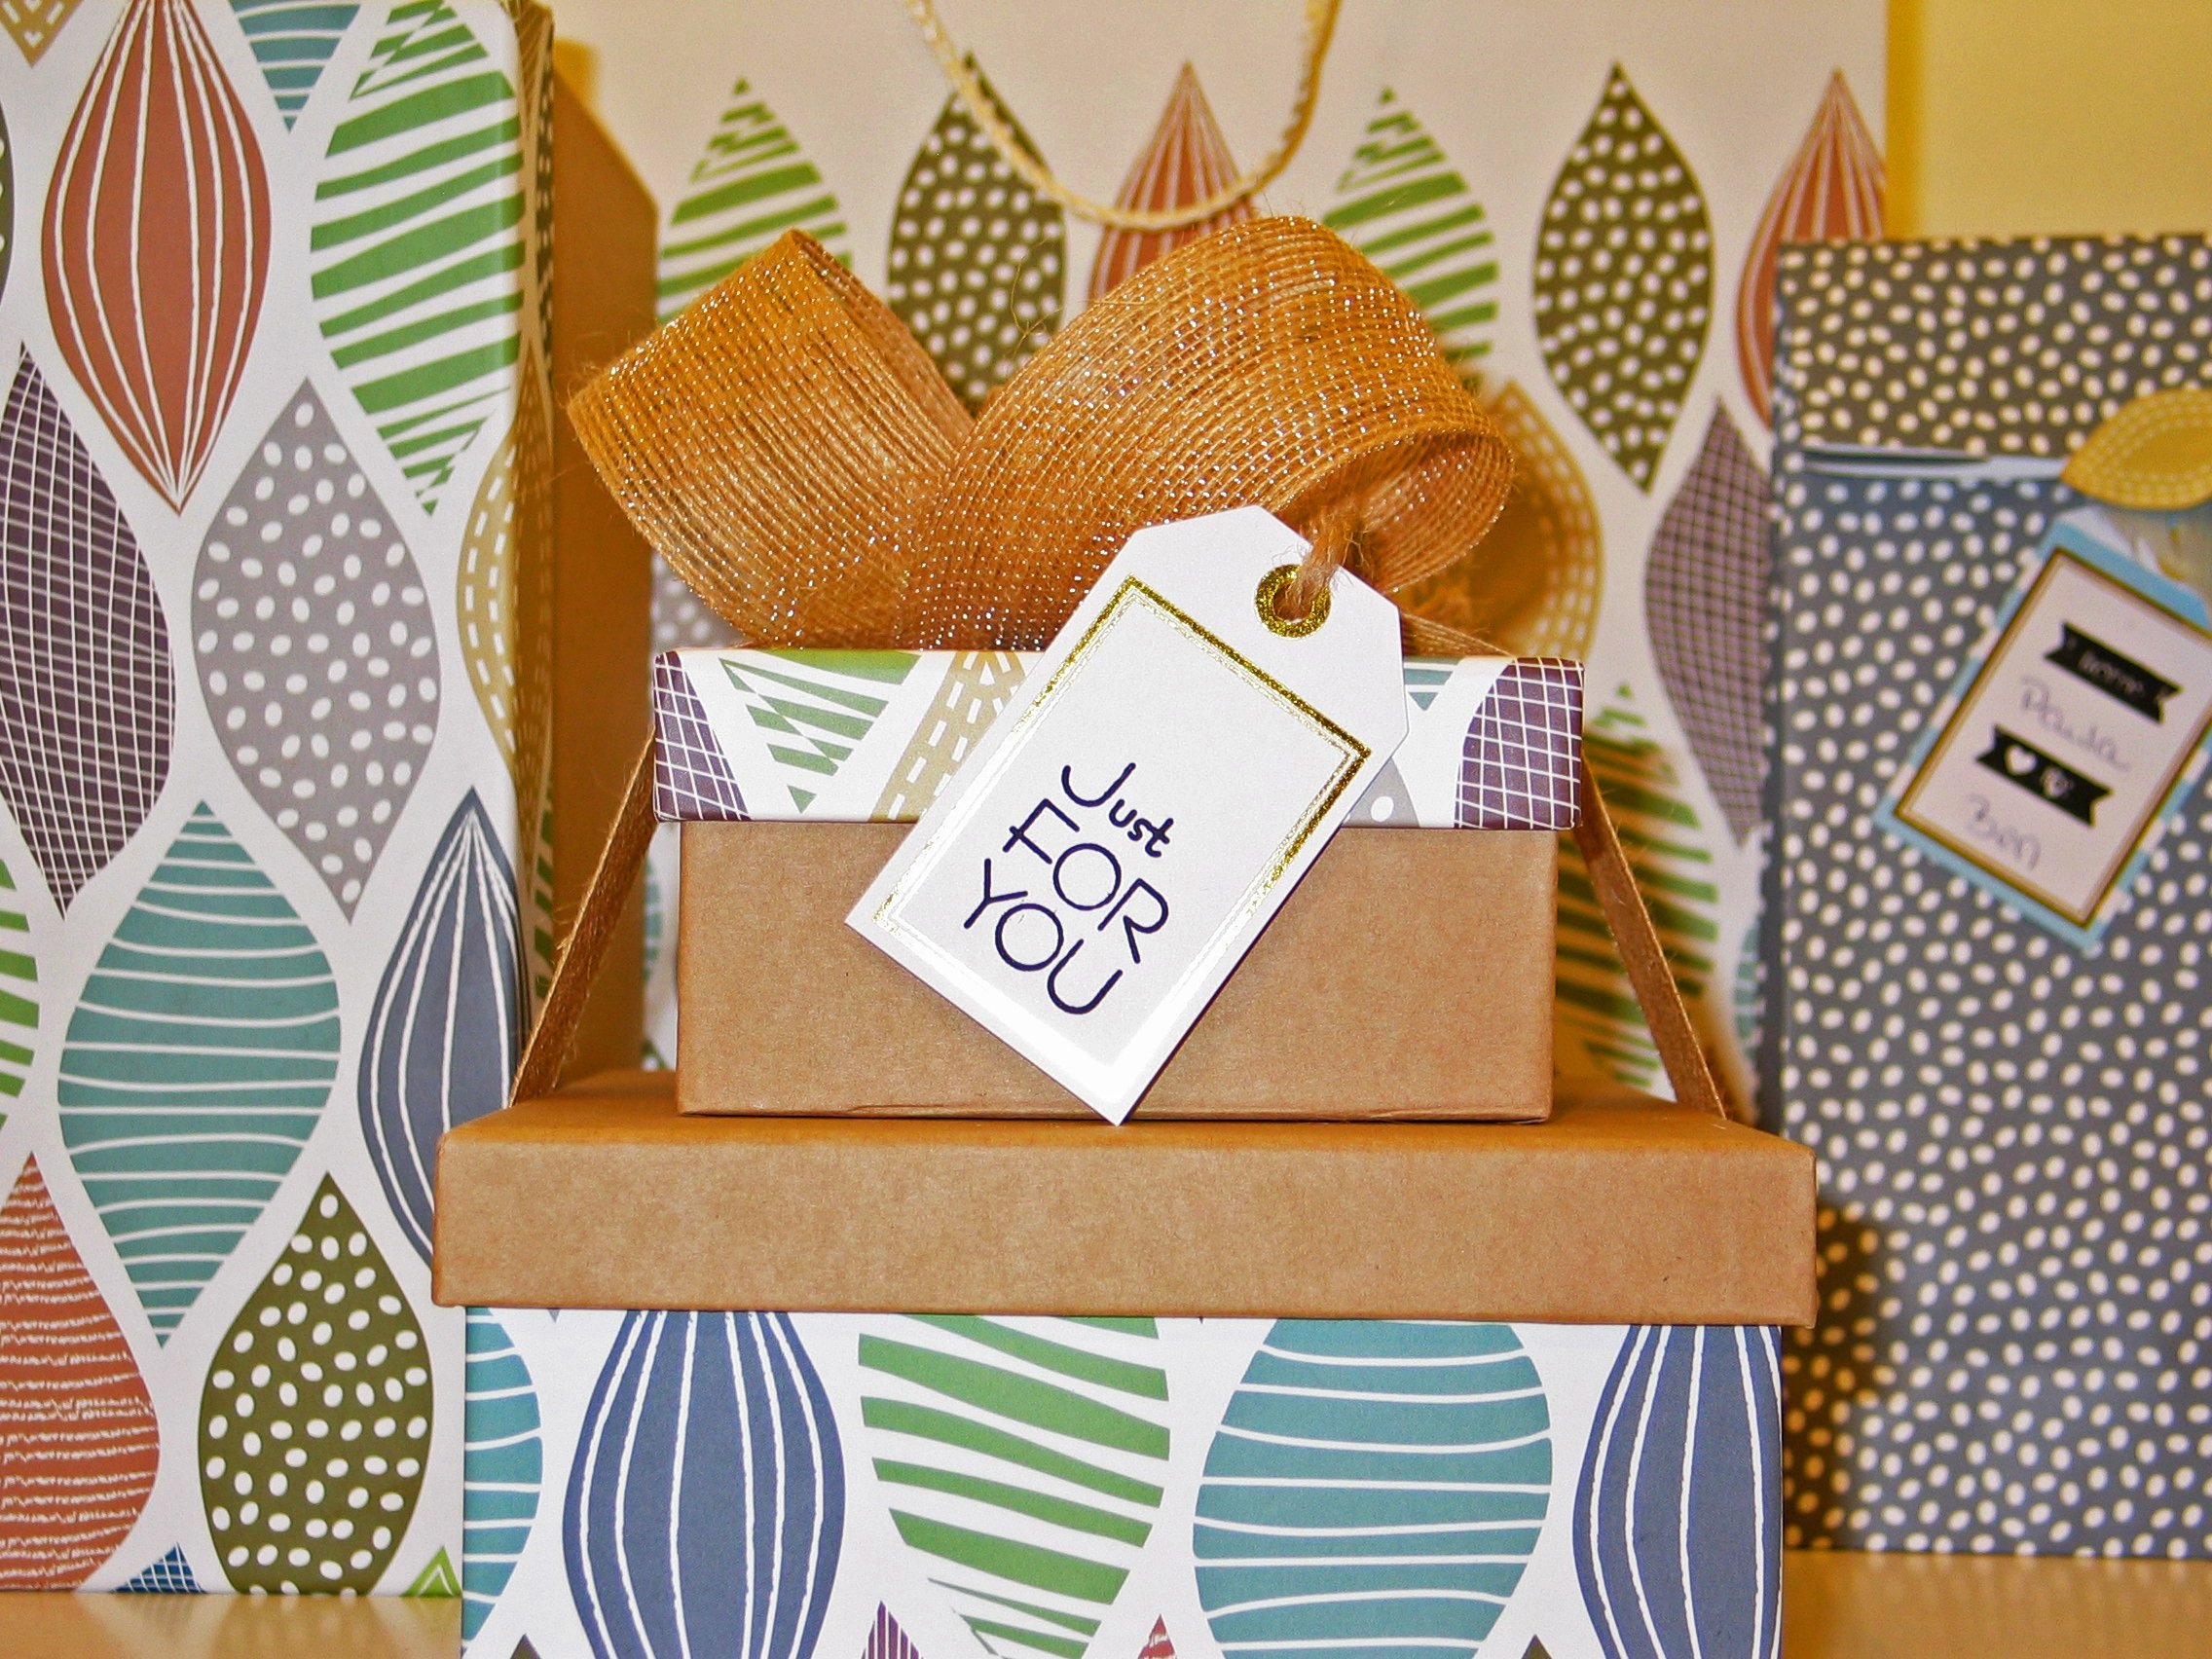 Curated boxes aim to leverage fashion as a service [5 Reading Tips]